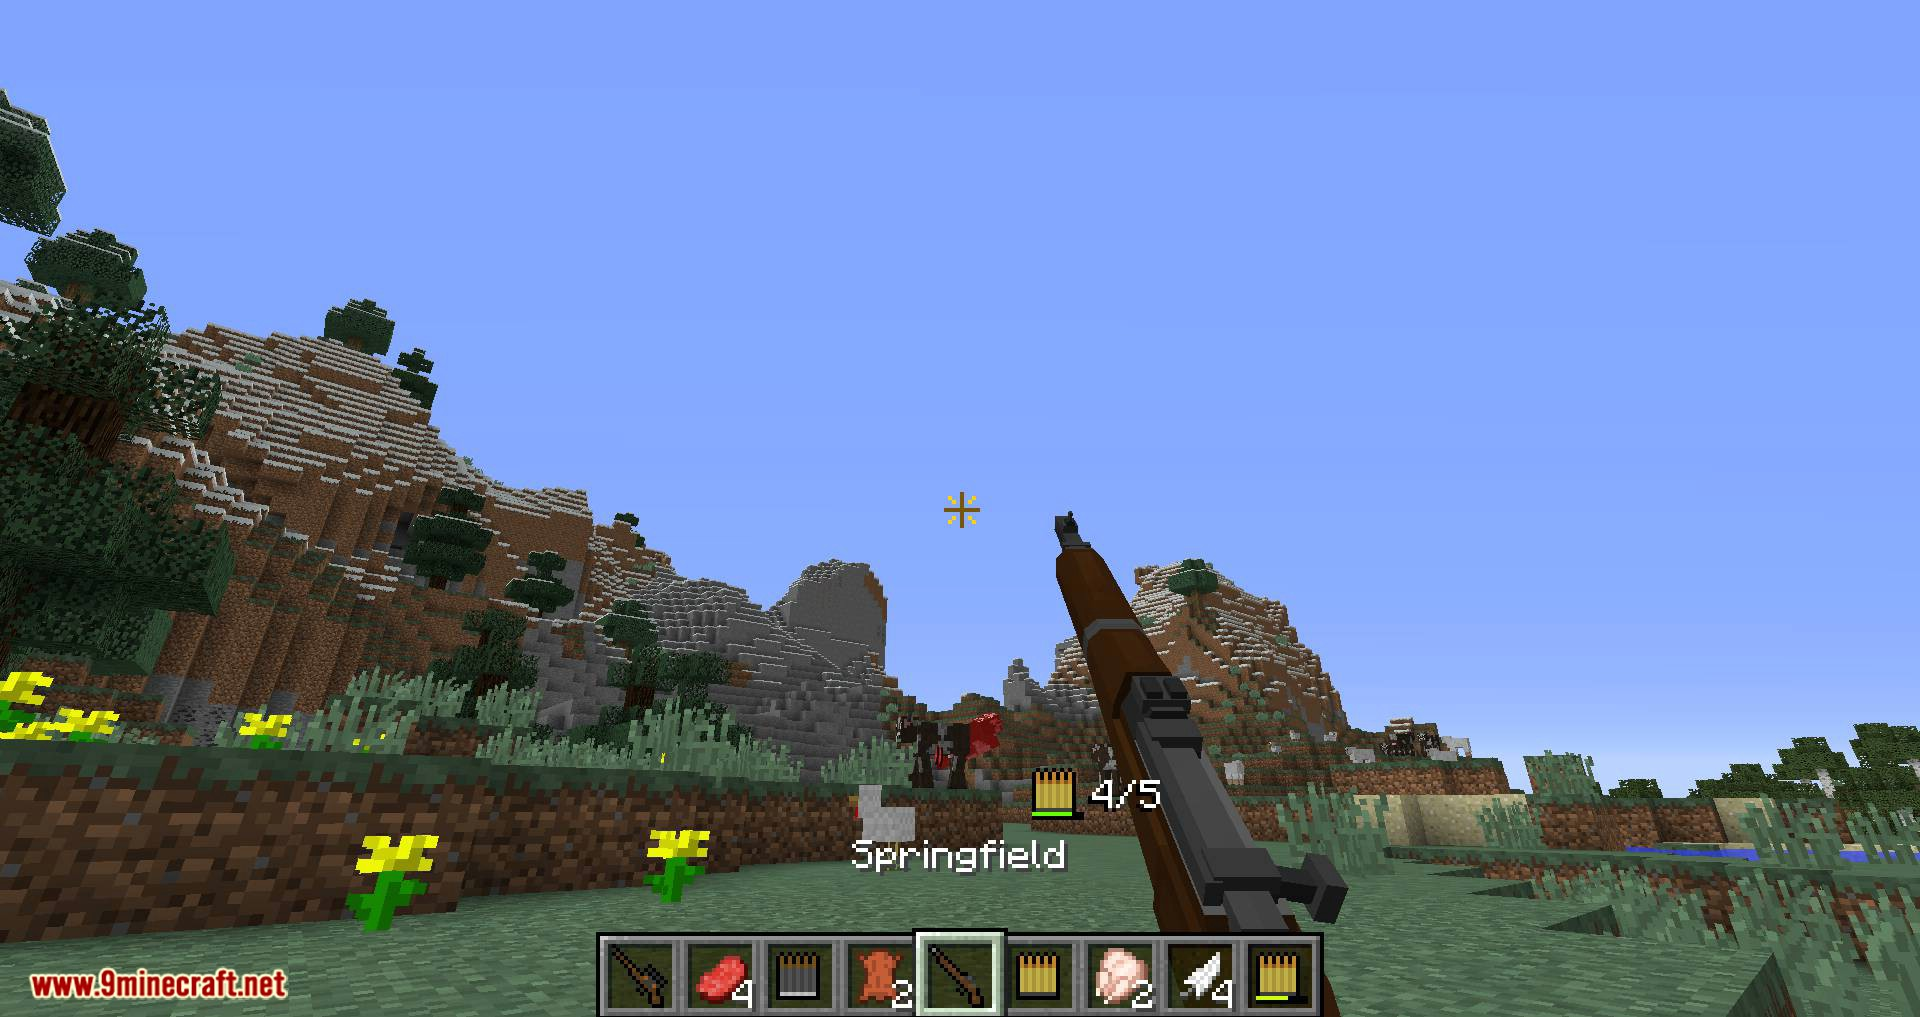 Flan_s Content Pack Call of Duty 2 Bolt-Action Rifles mod for minecraft 07